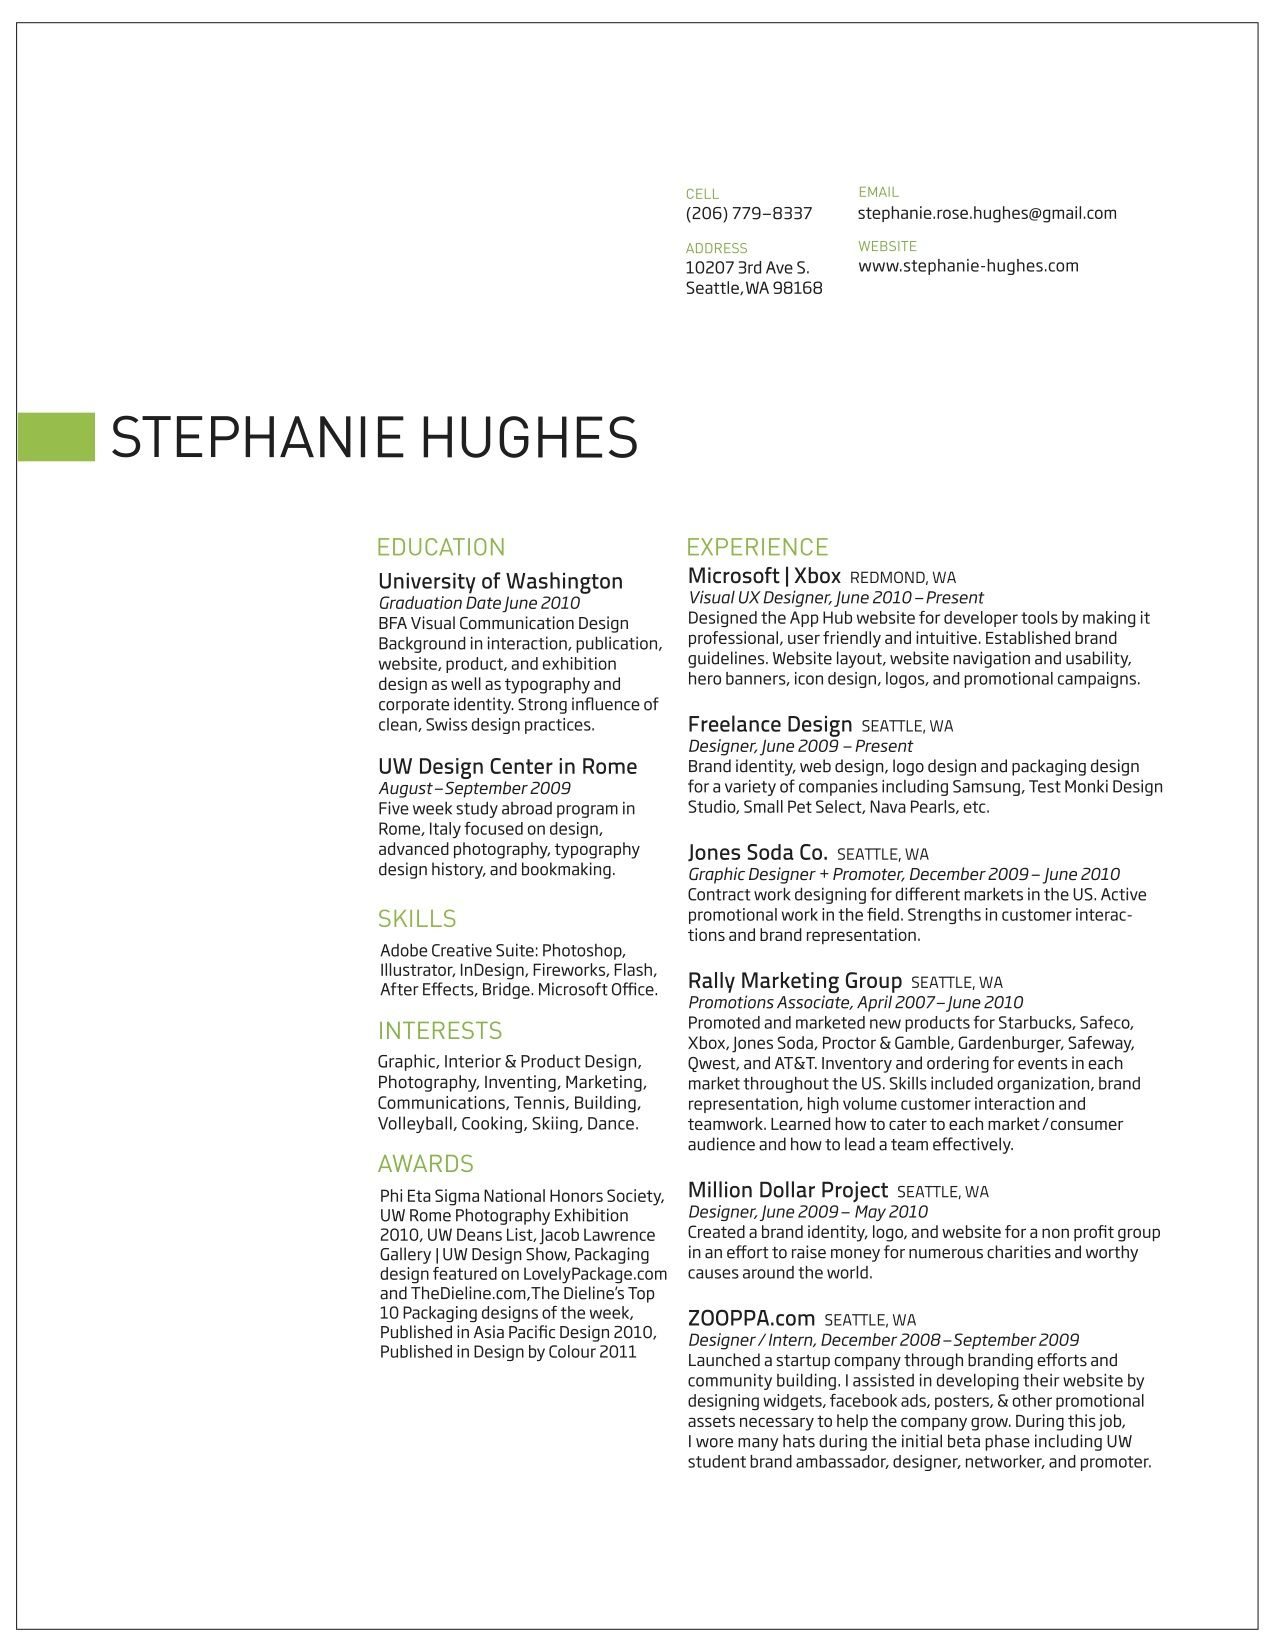 beautiful resume ideas that work arts ed design and layout love this resume white space really works even though there is a lot of text